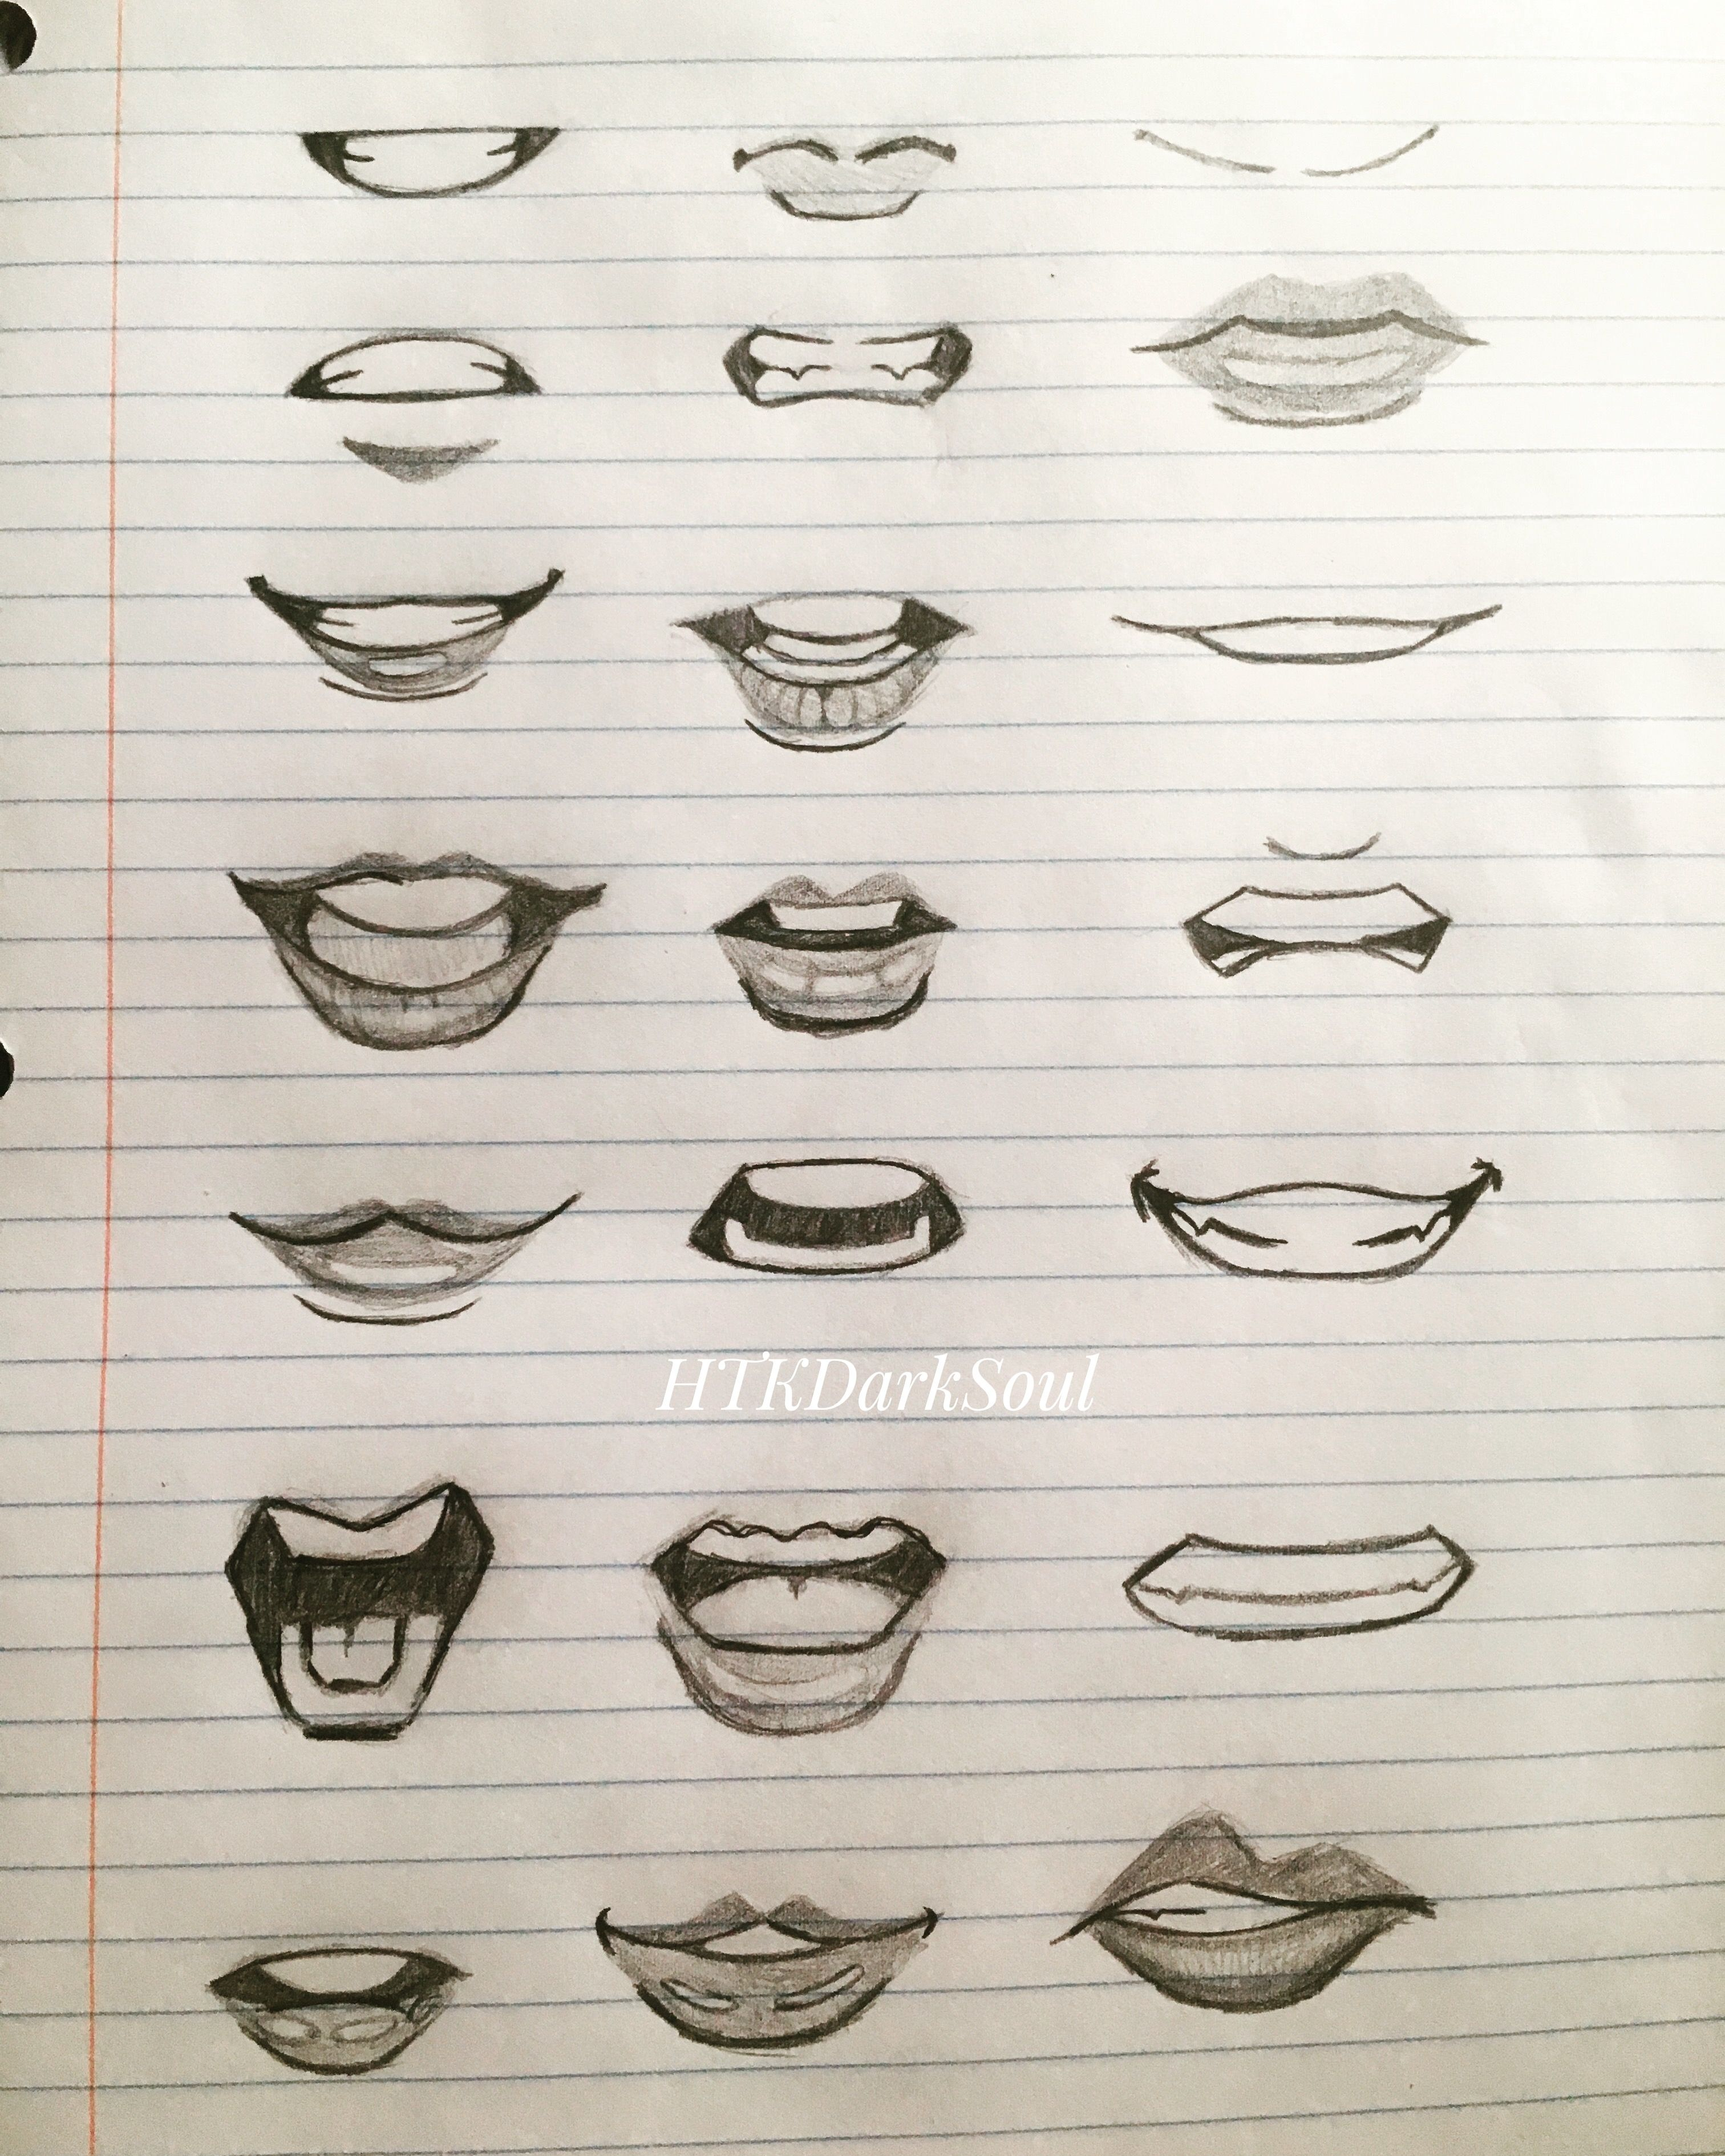 Anime Front View : anime, front, Different, Front, Mouths., —HTKDarkSoul, Anime, Mouth, Drawing,, Drawing